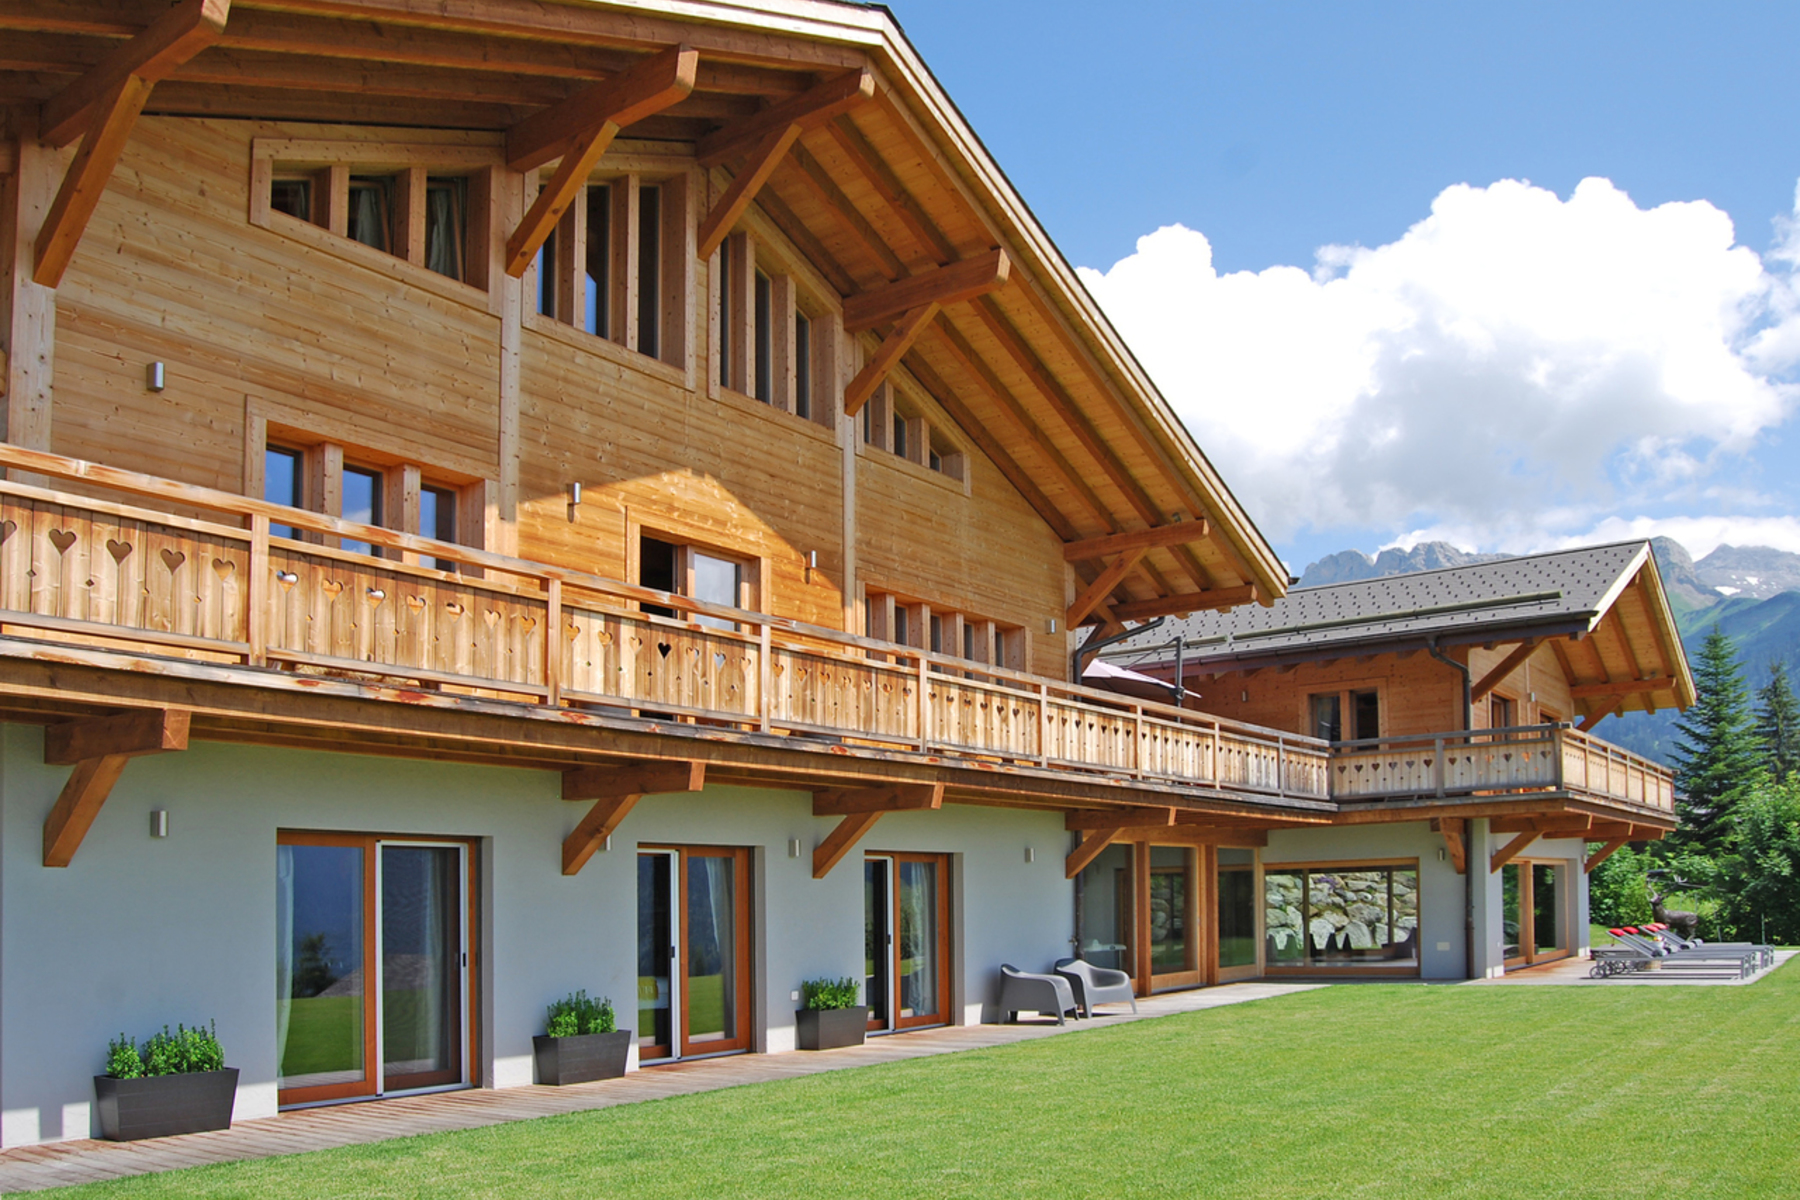 Single Family Home for Sale at Chalet Nasha Quartier des Frasses Gryon, Vaud, 1882 Switzerland